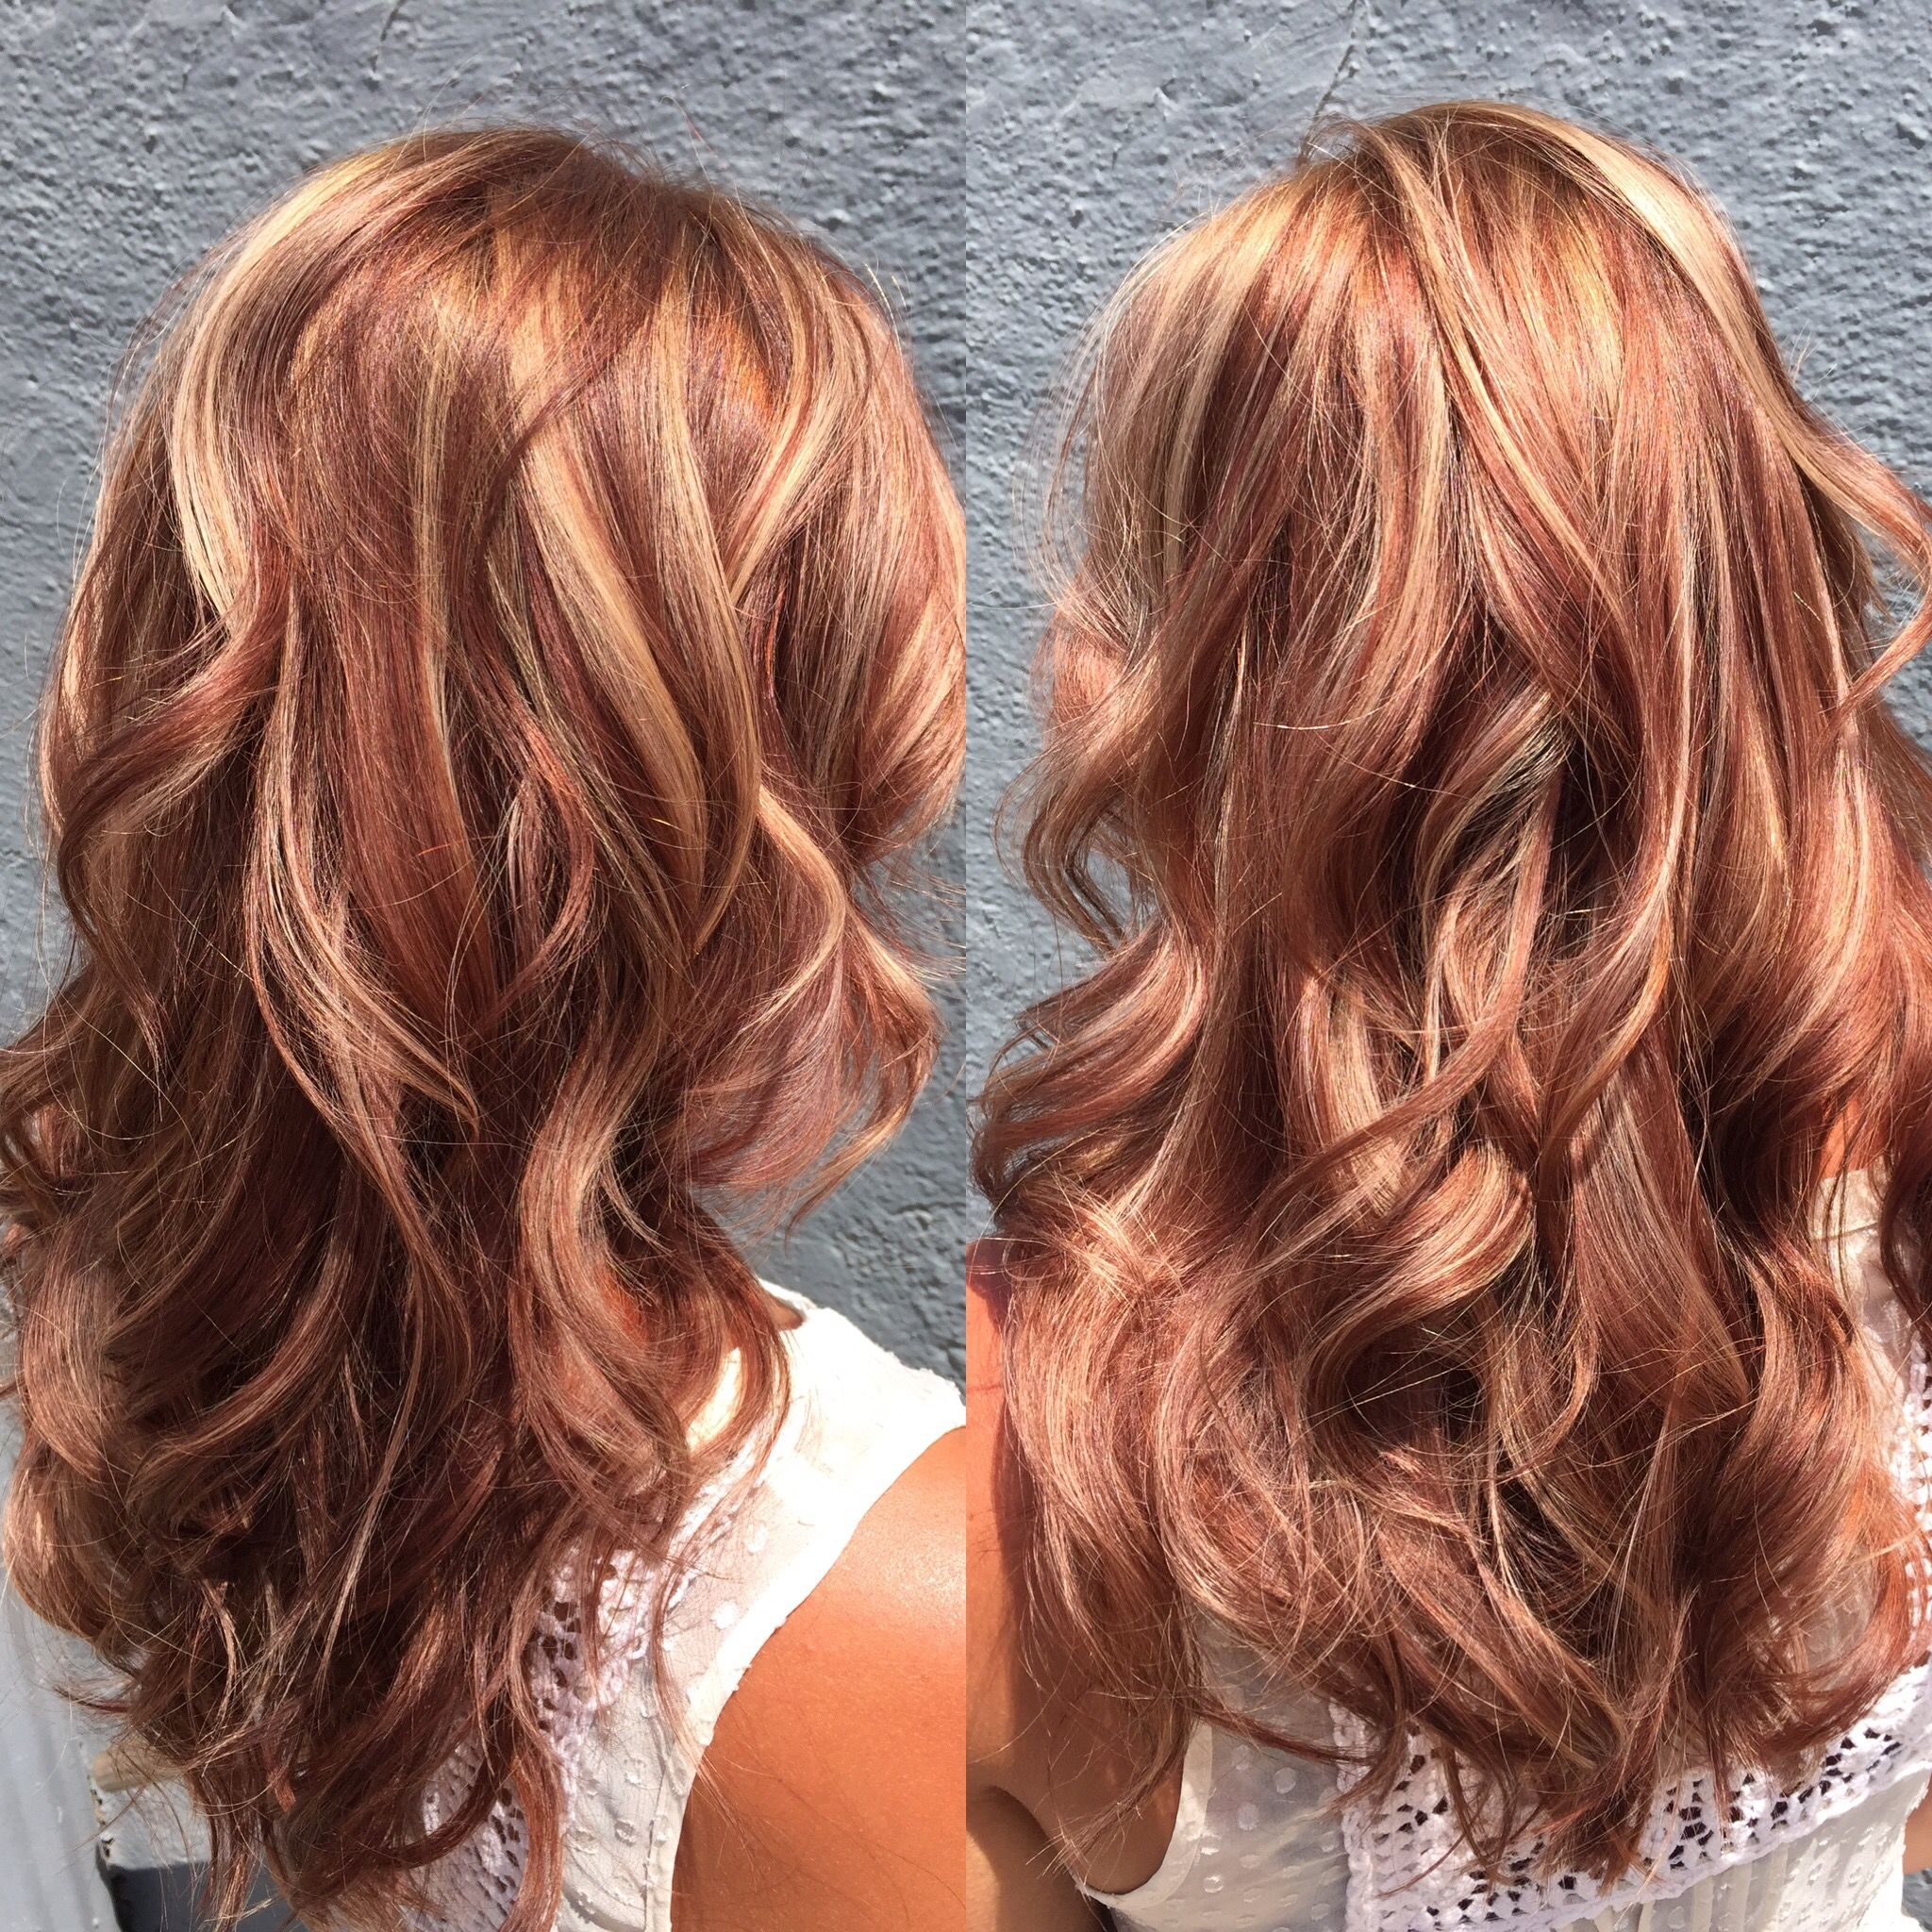 Hair Hilite Lowlite Auburn Red Blonde Waves Long Hair